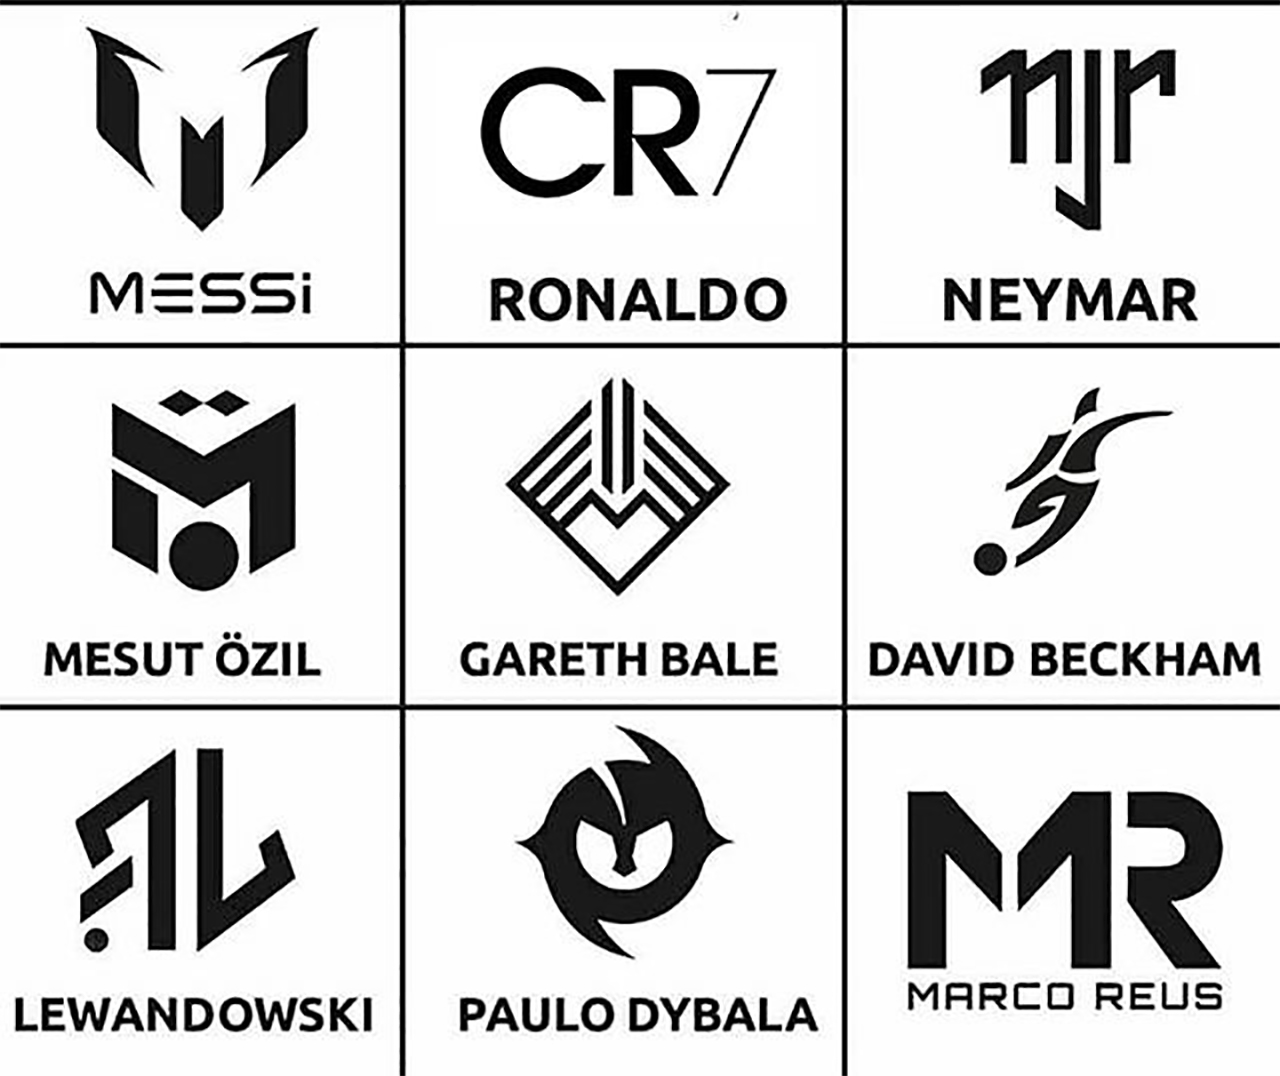 Superstar Soccer Players Of Today Have Their Own Logos